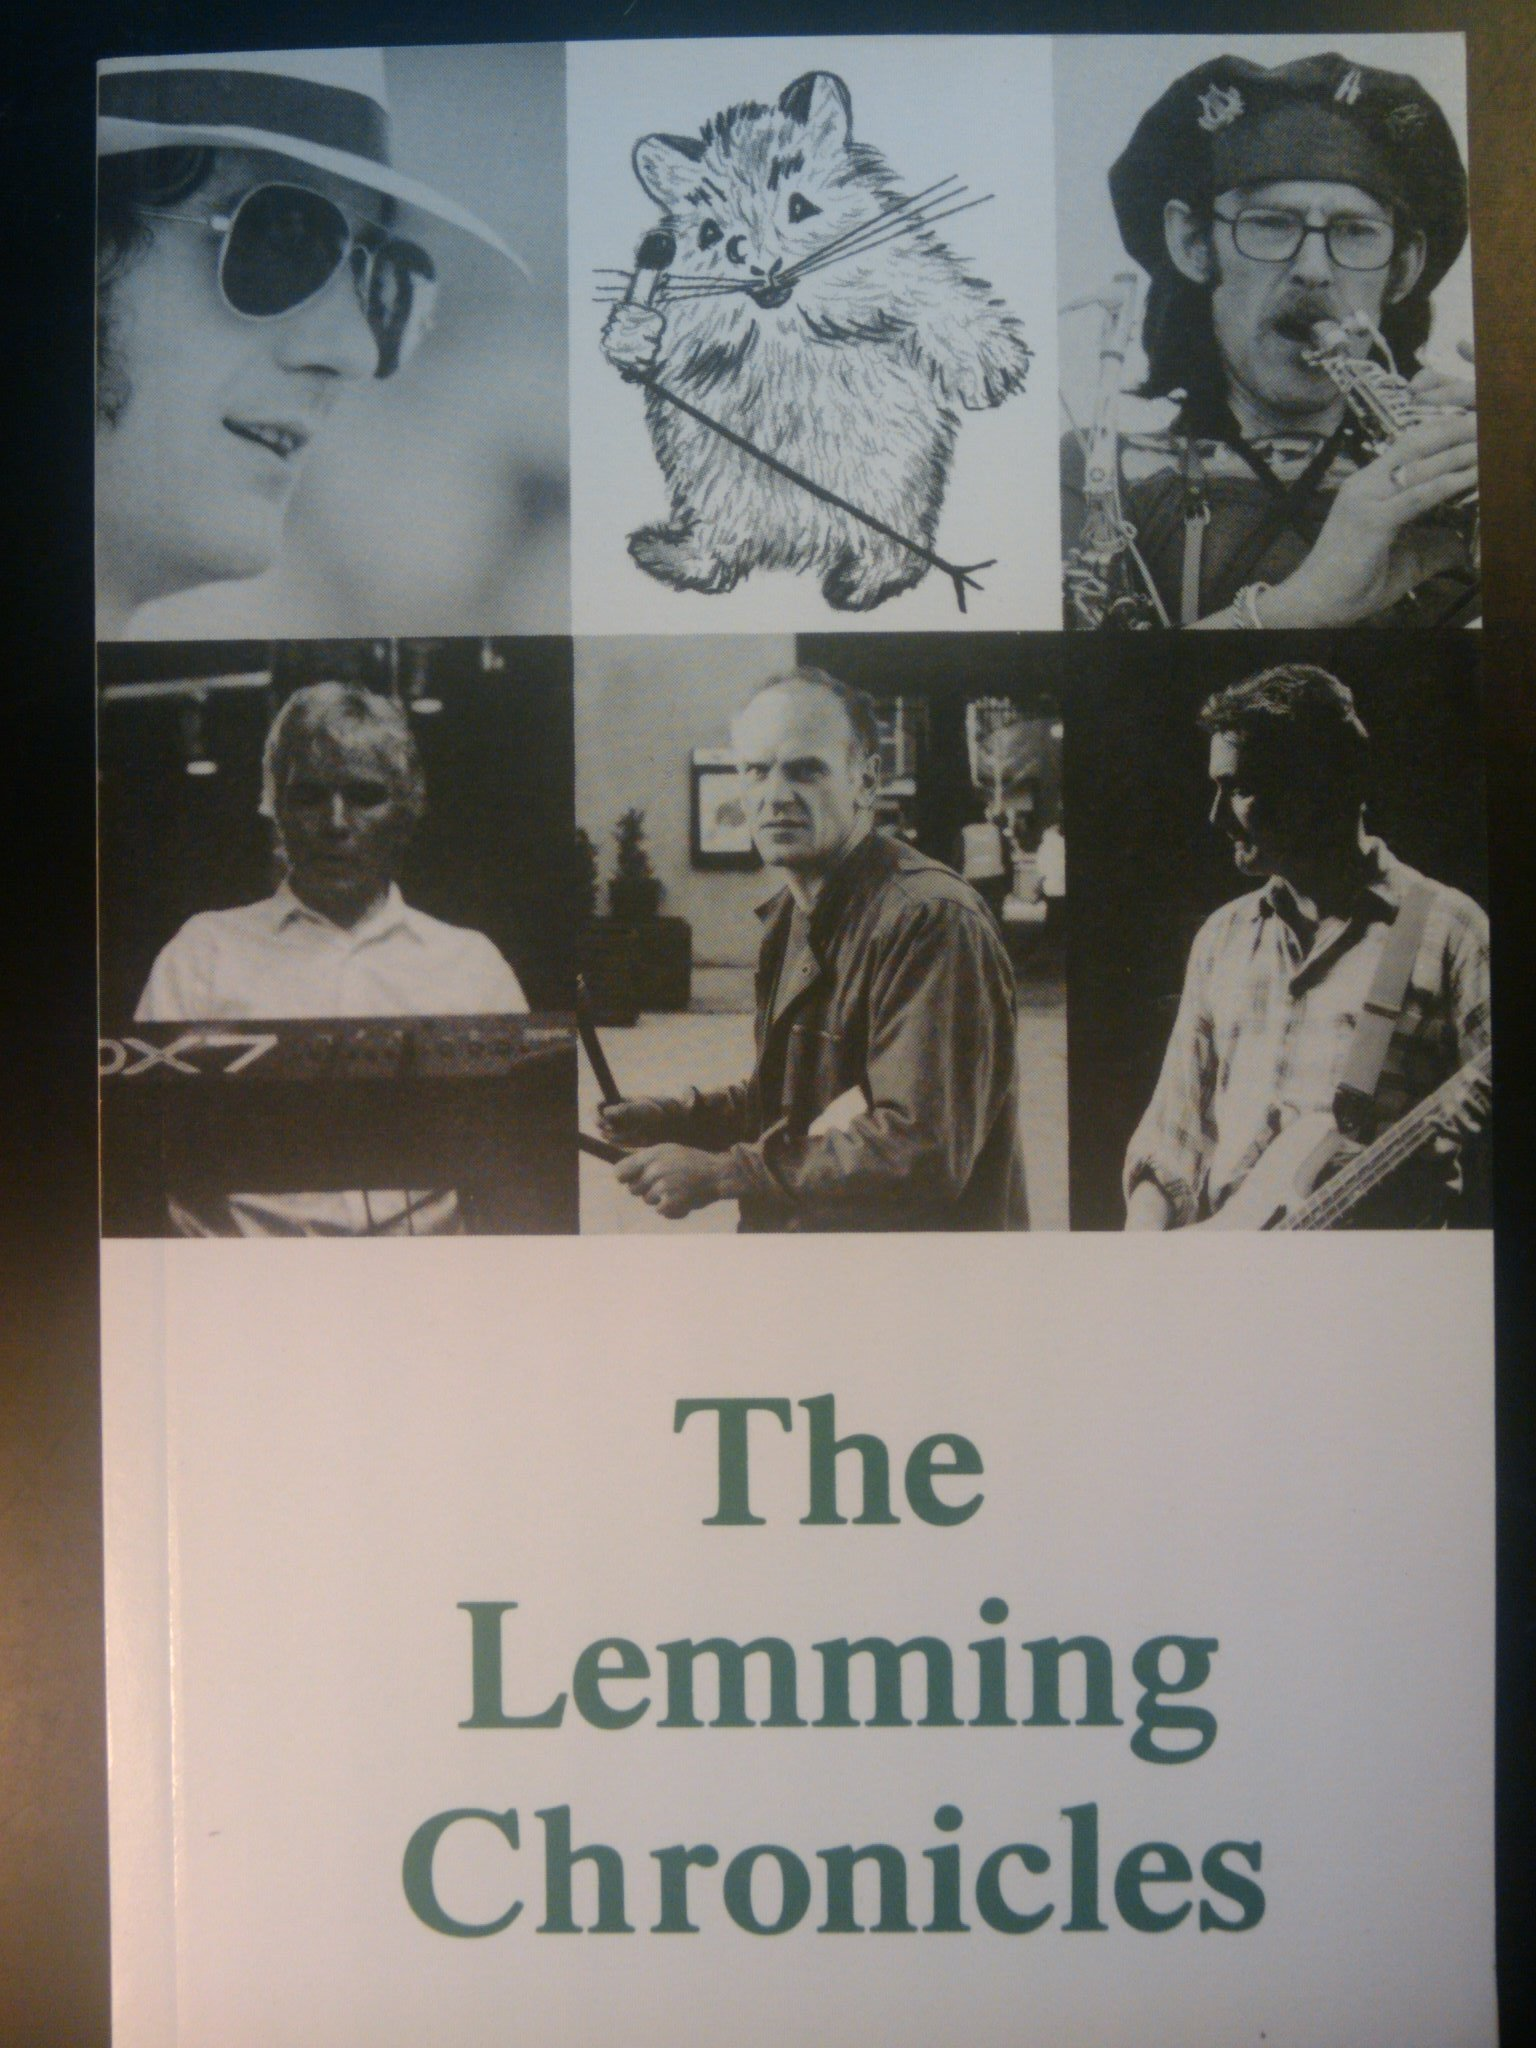 David Shaw-Parker — The Lemming Chronicles